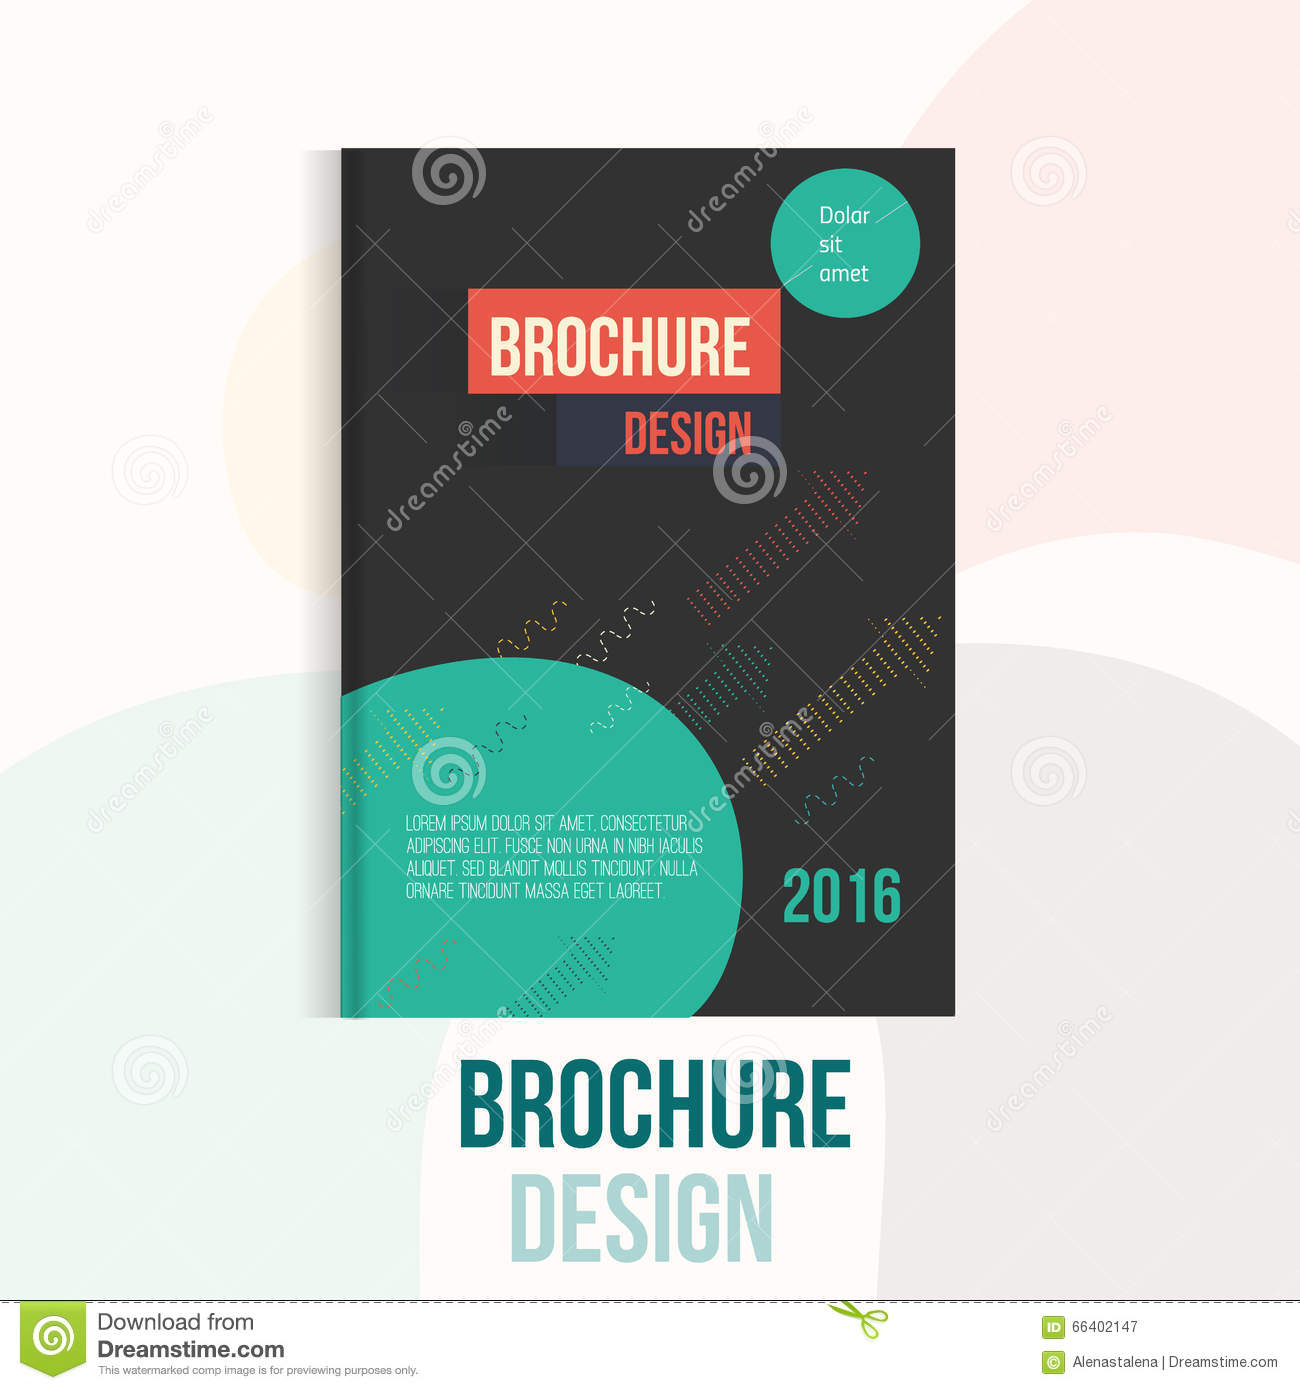 Modern Book Cover Design Template : Book cover print template with abstract shapes cartoon